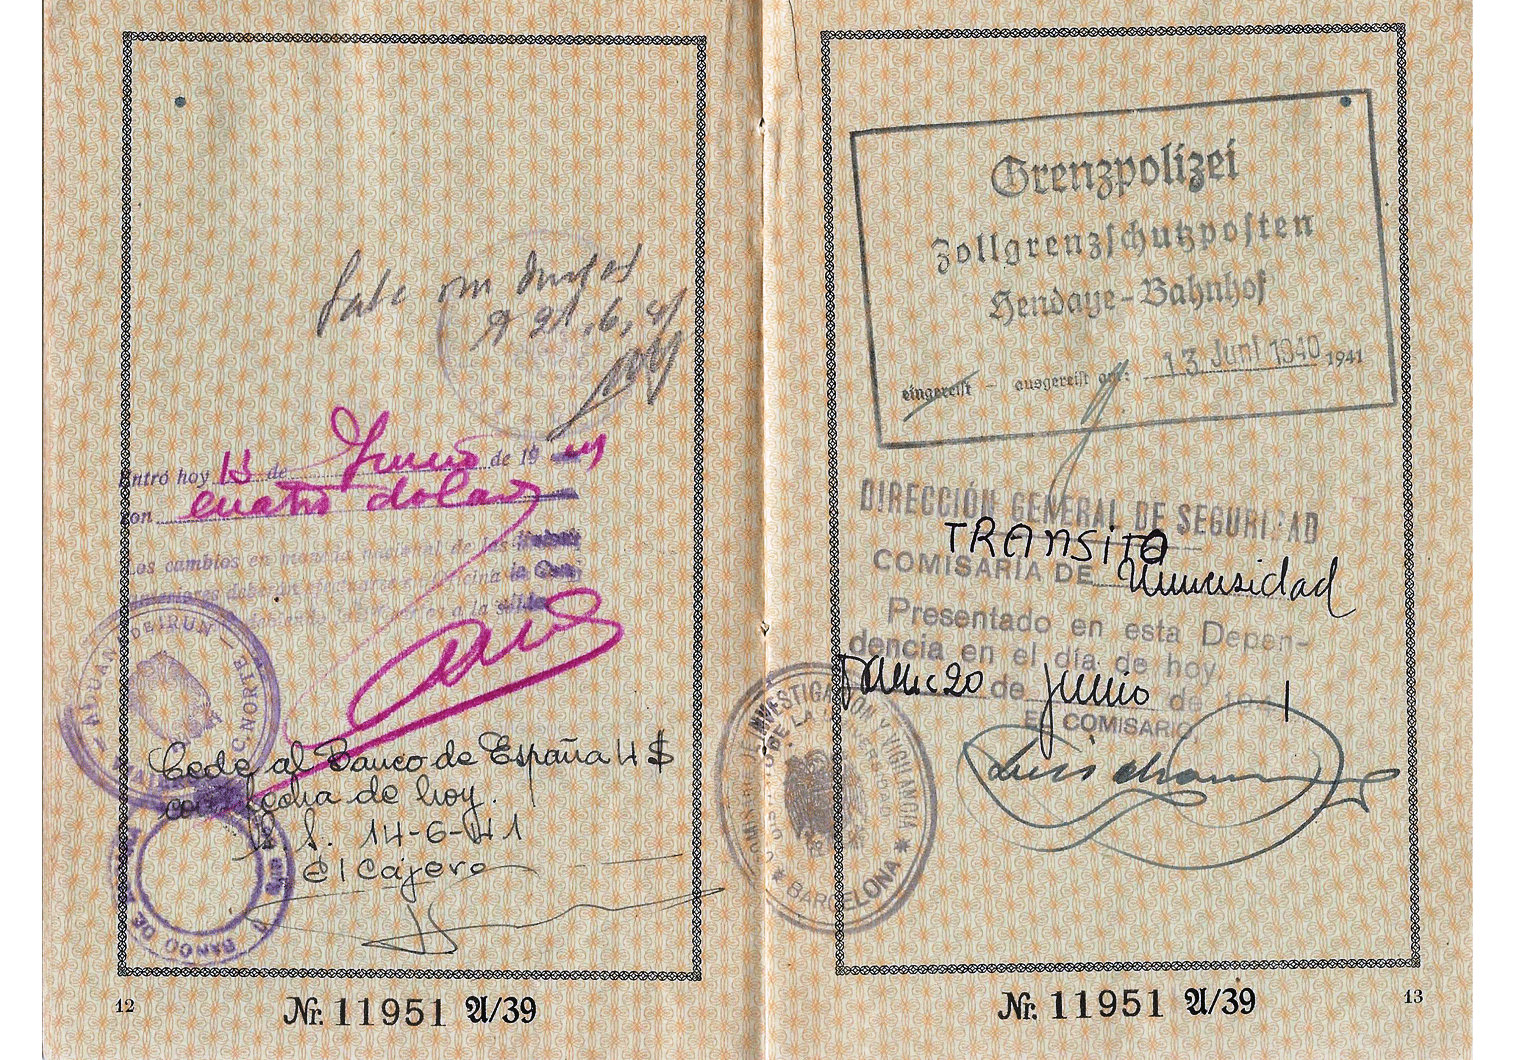 J stamped German passport from 1941 used for Spain